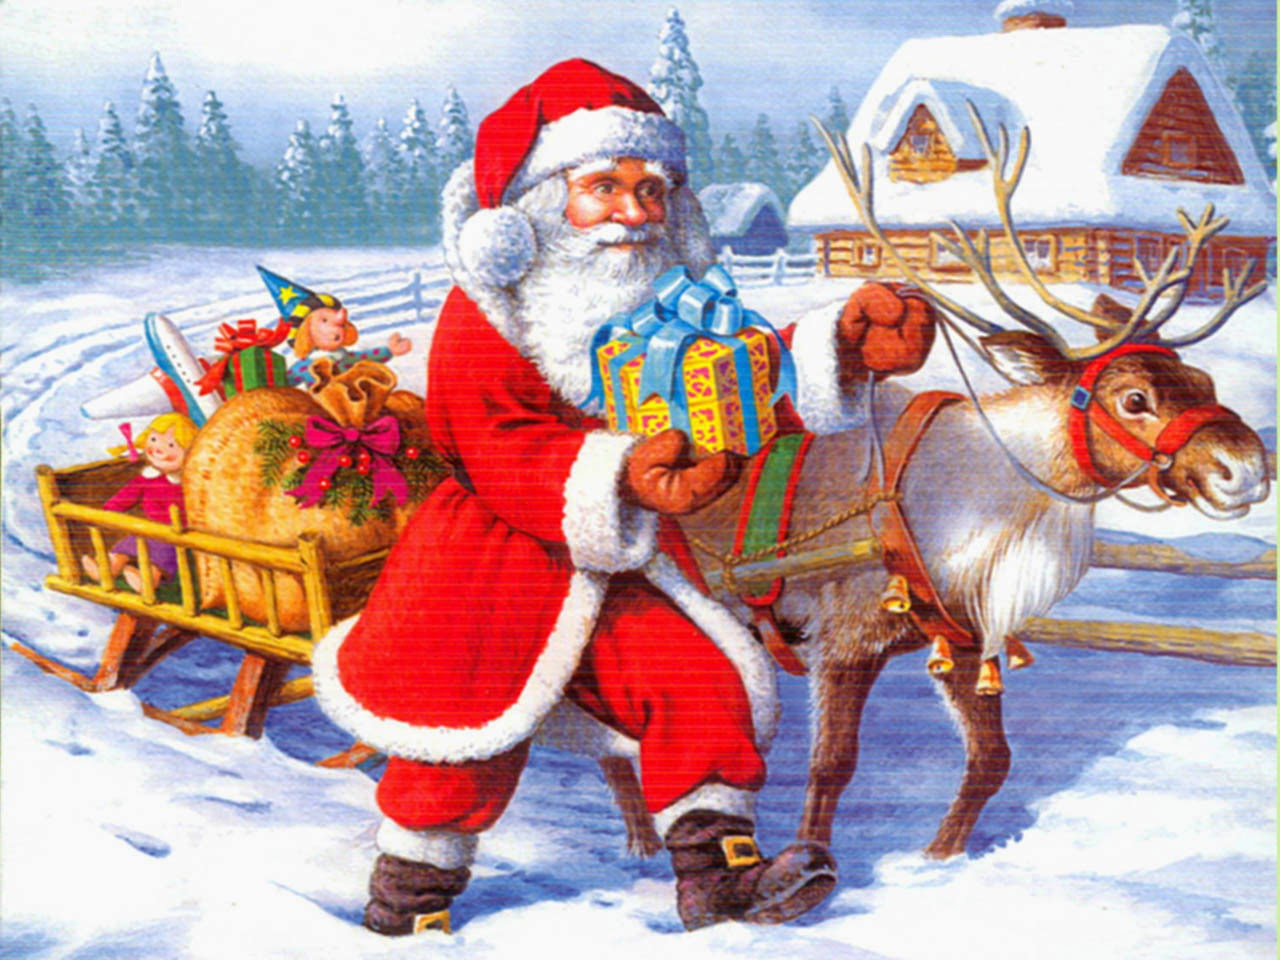 santa-claus-with-reindeer-and-gift-bag-image-kids-children-cartoon-painting-picture.jpg